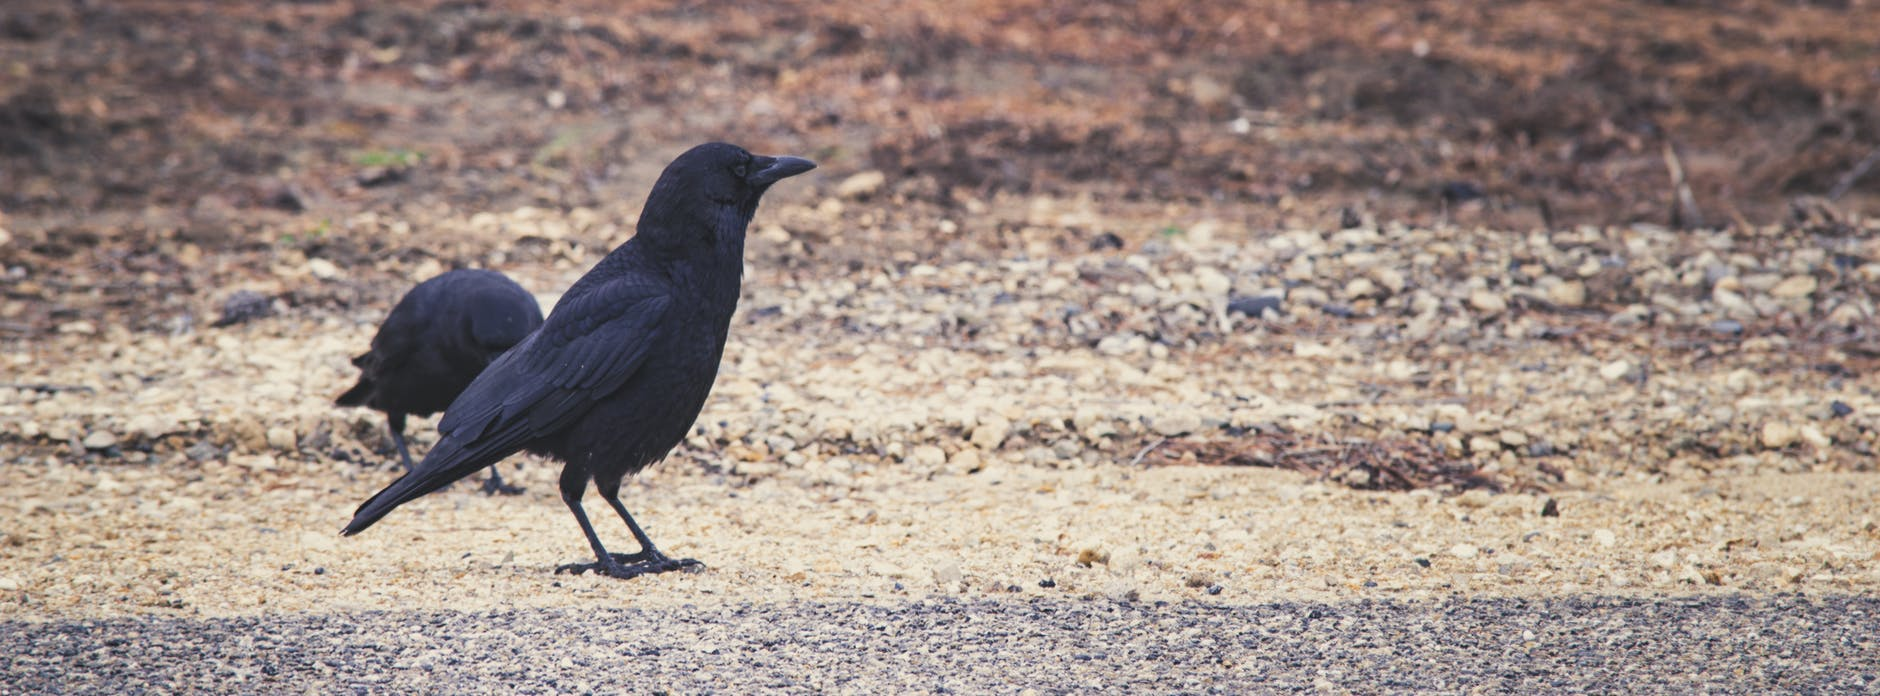 Why Did The Crow Die While Crossing The Road?